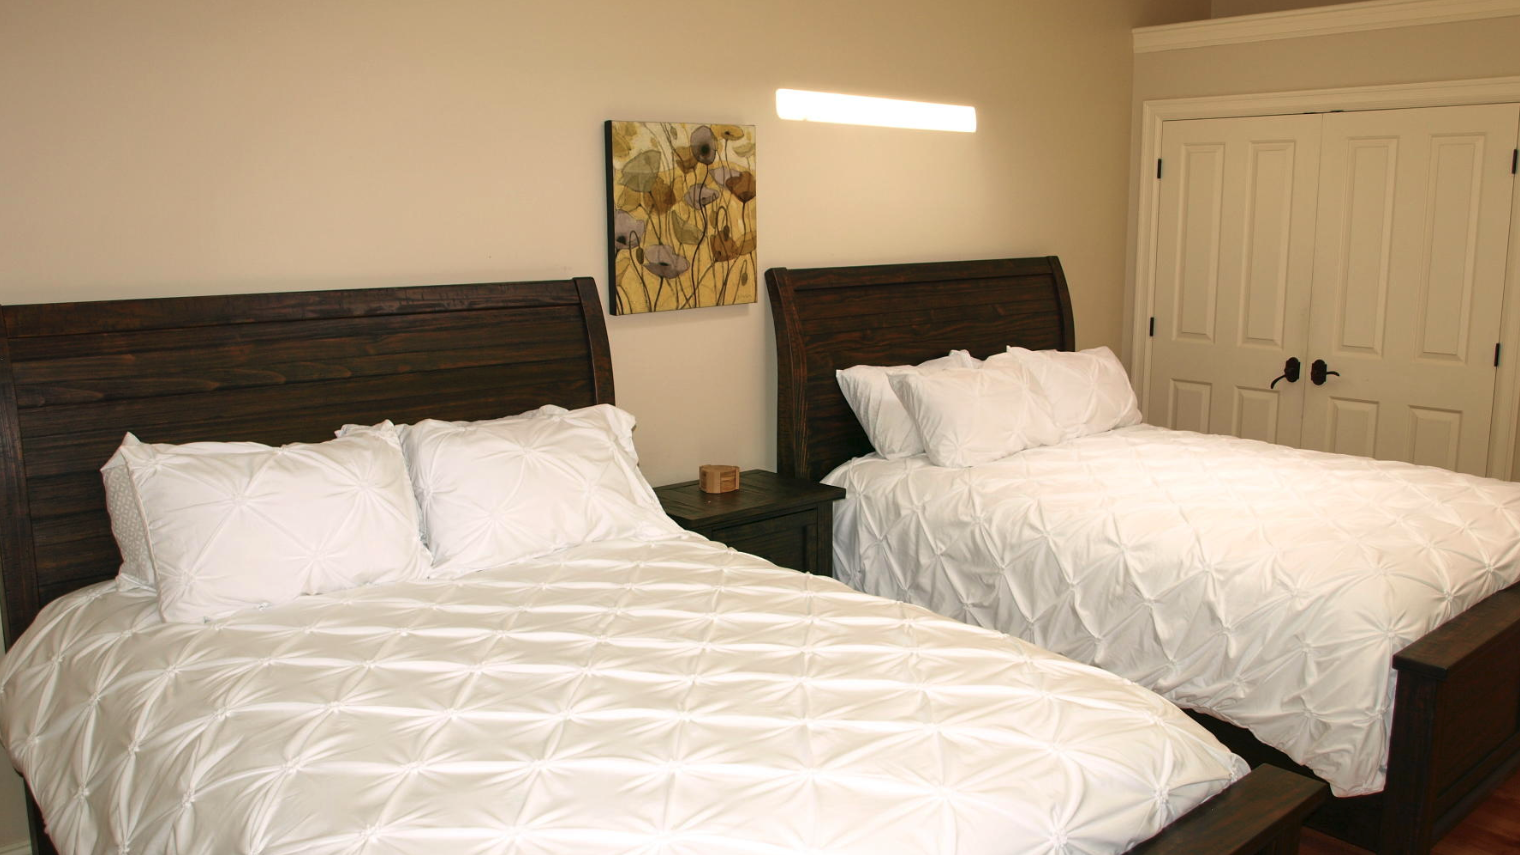 Cornerstone Inn large double room with fresh linens